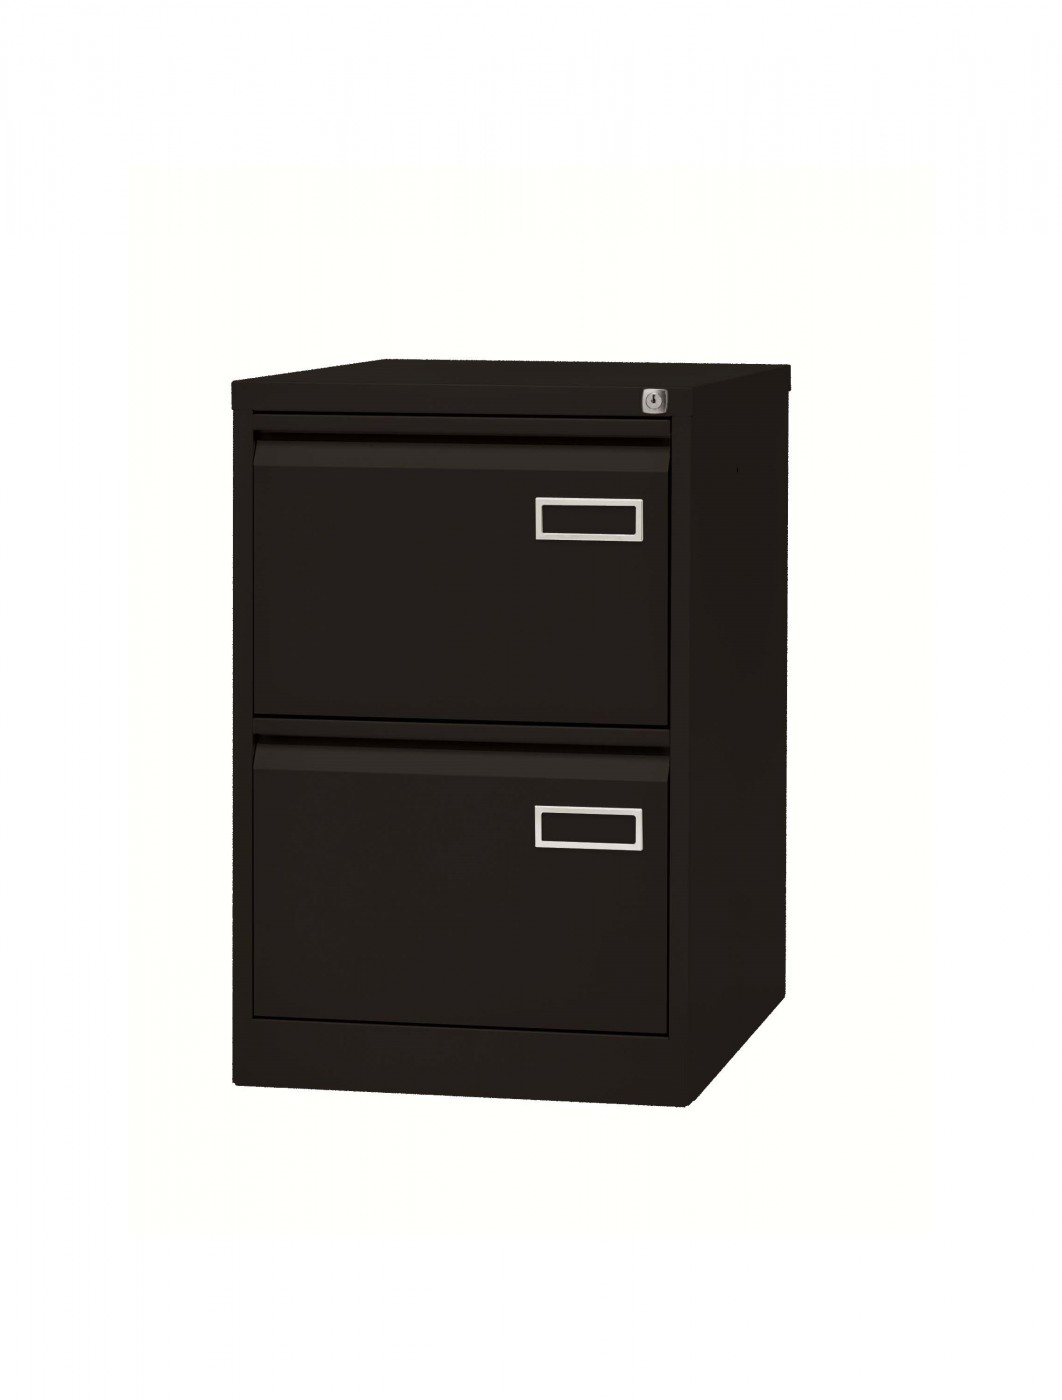 Unique Office Furniture Filing Cabinets  OfficeSupermarketcouk